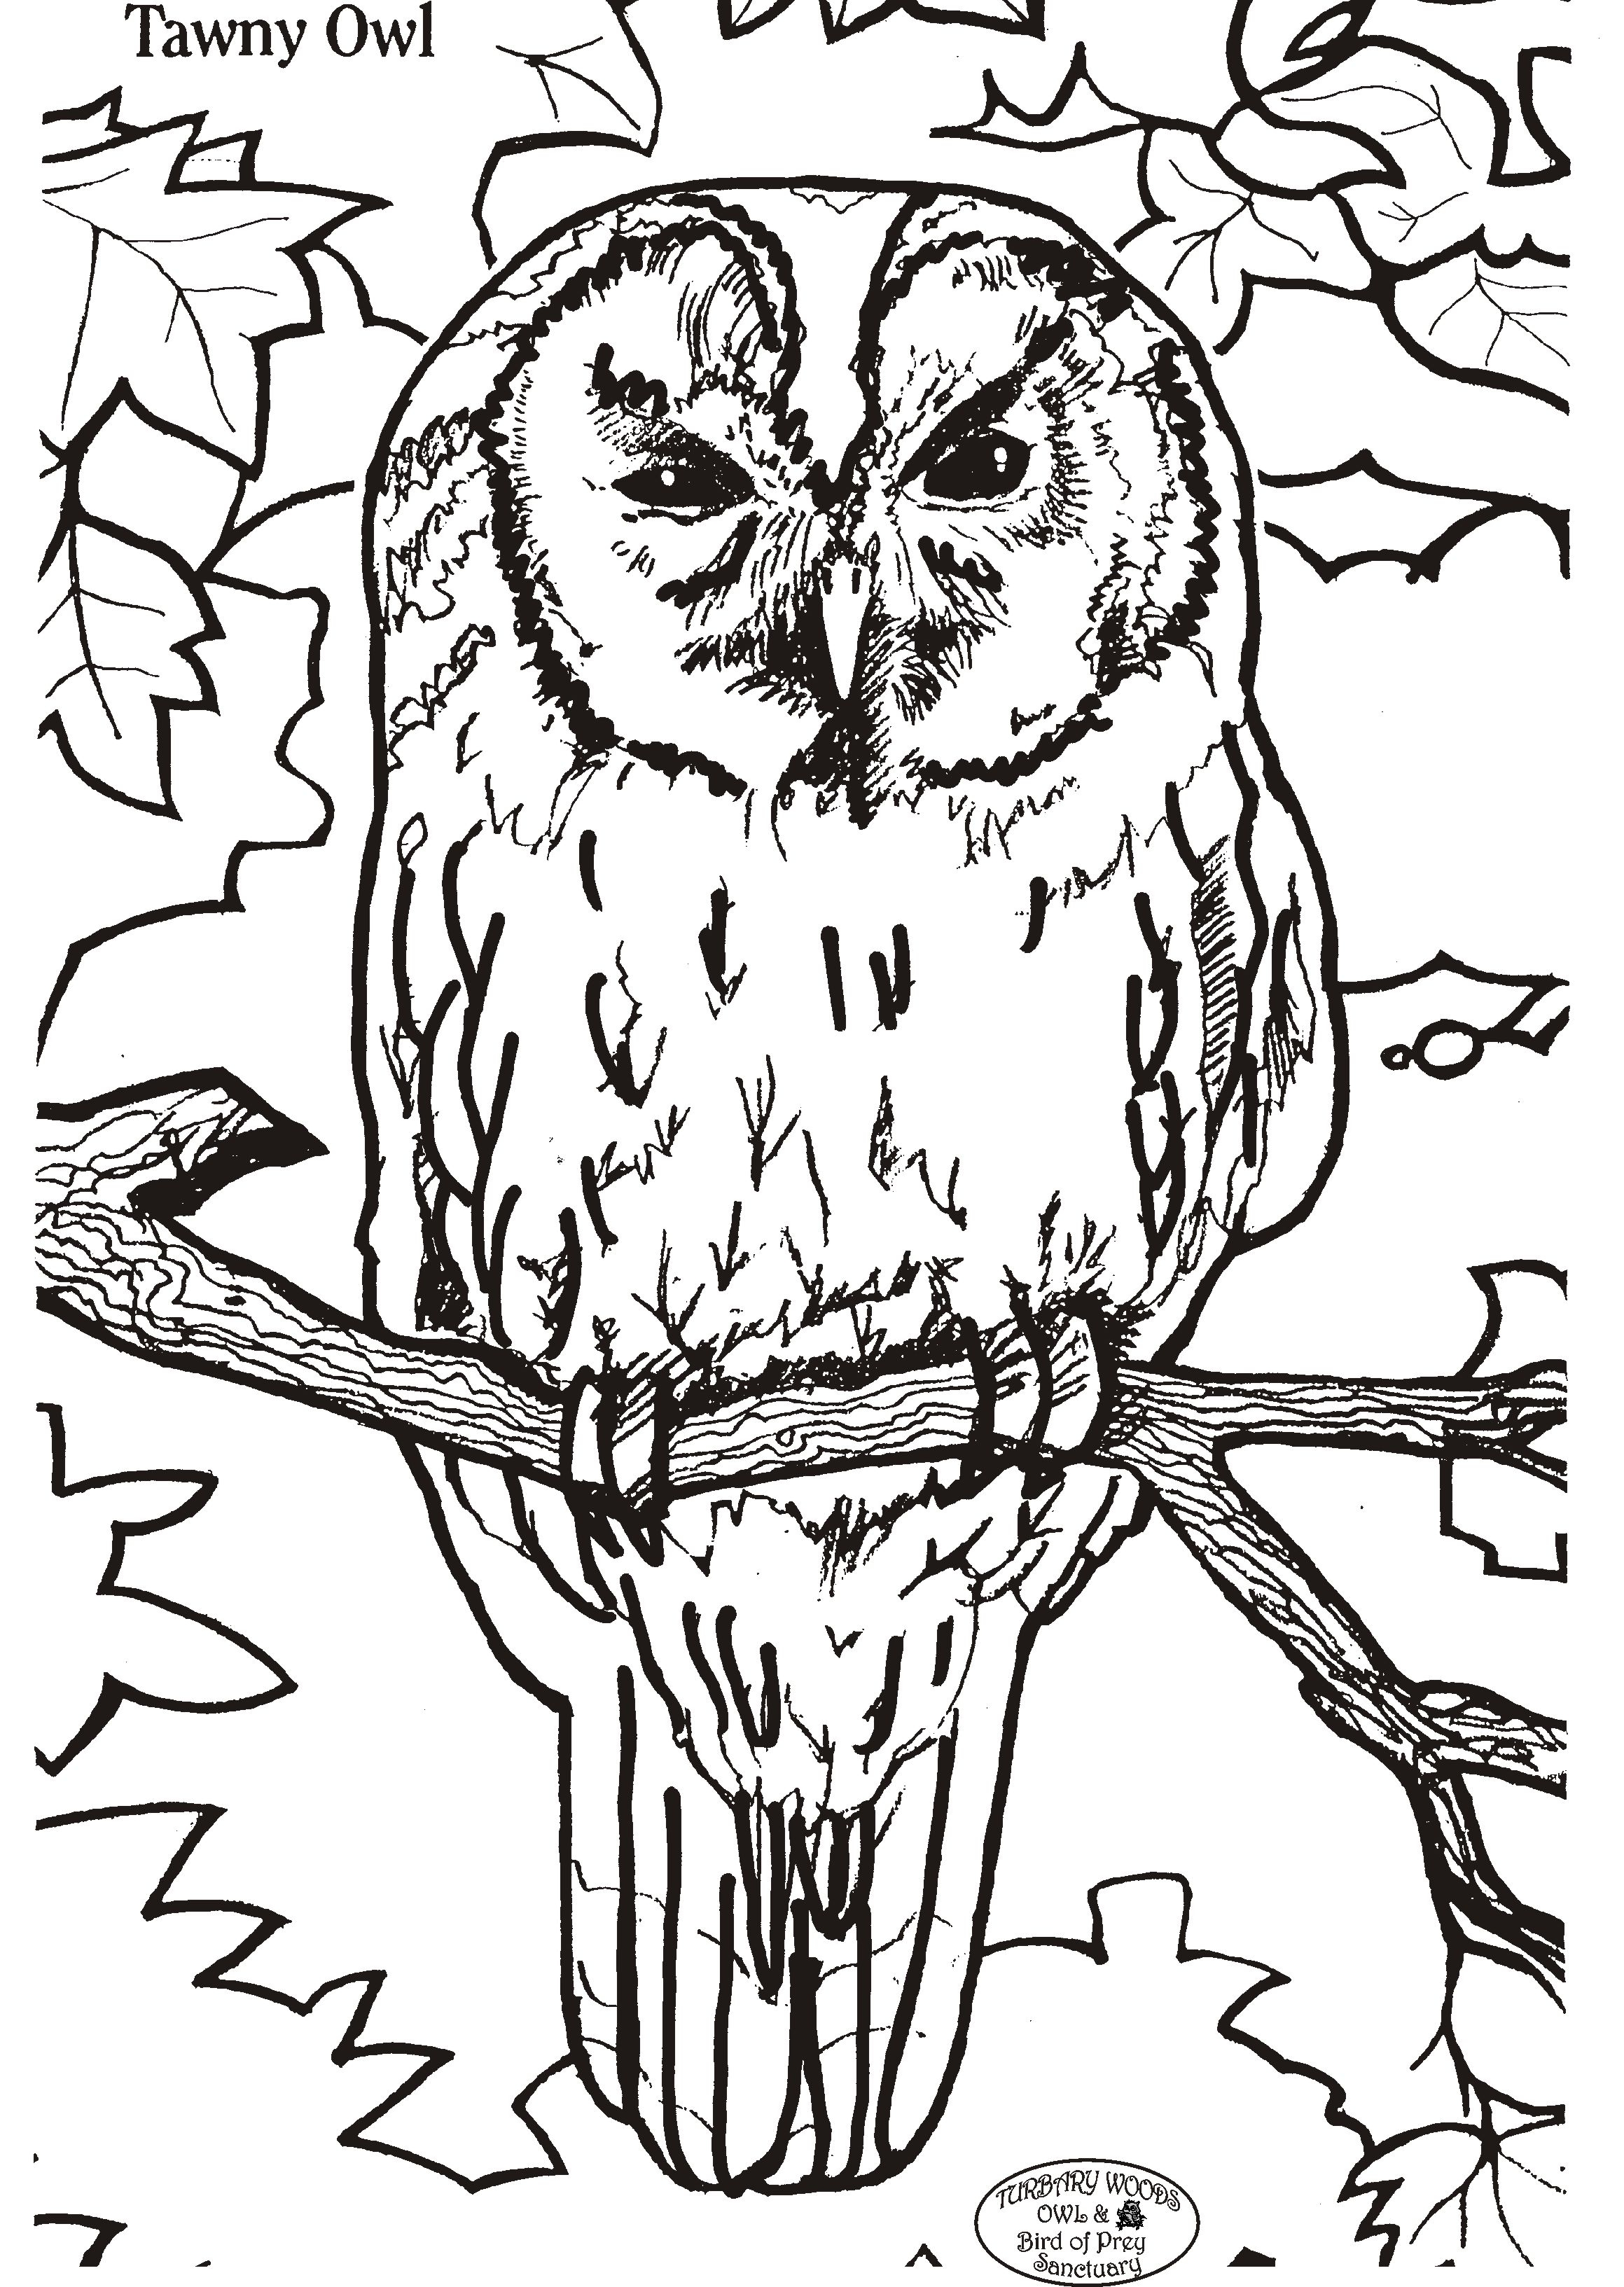 tawny owl colouring competition fun stuff turbary woods